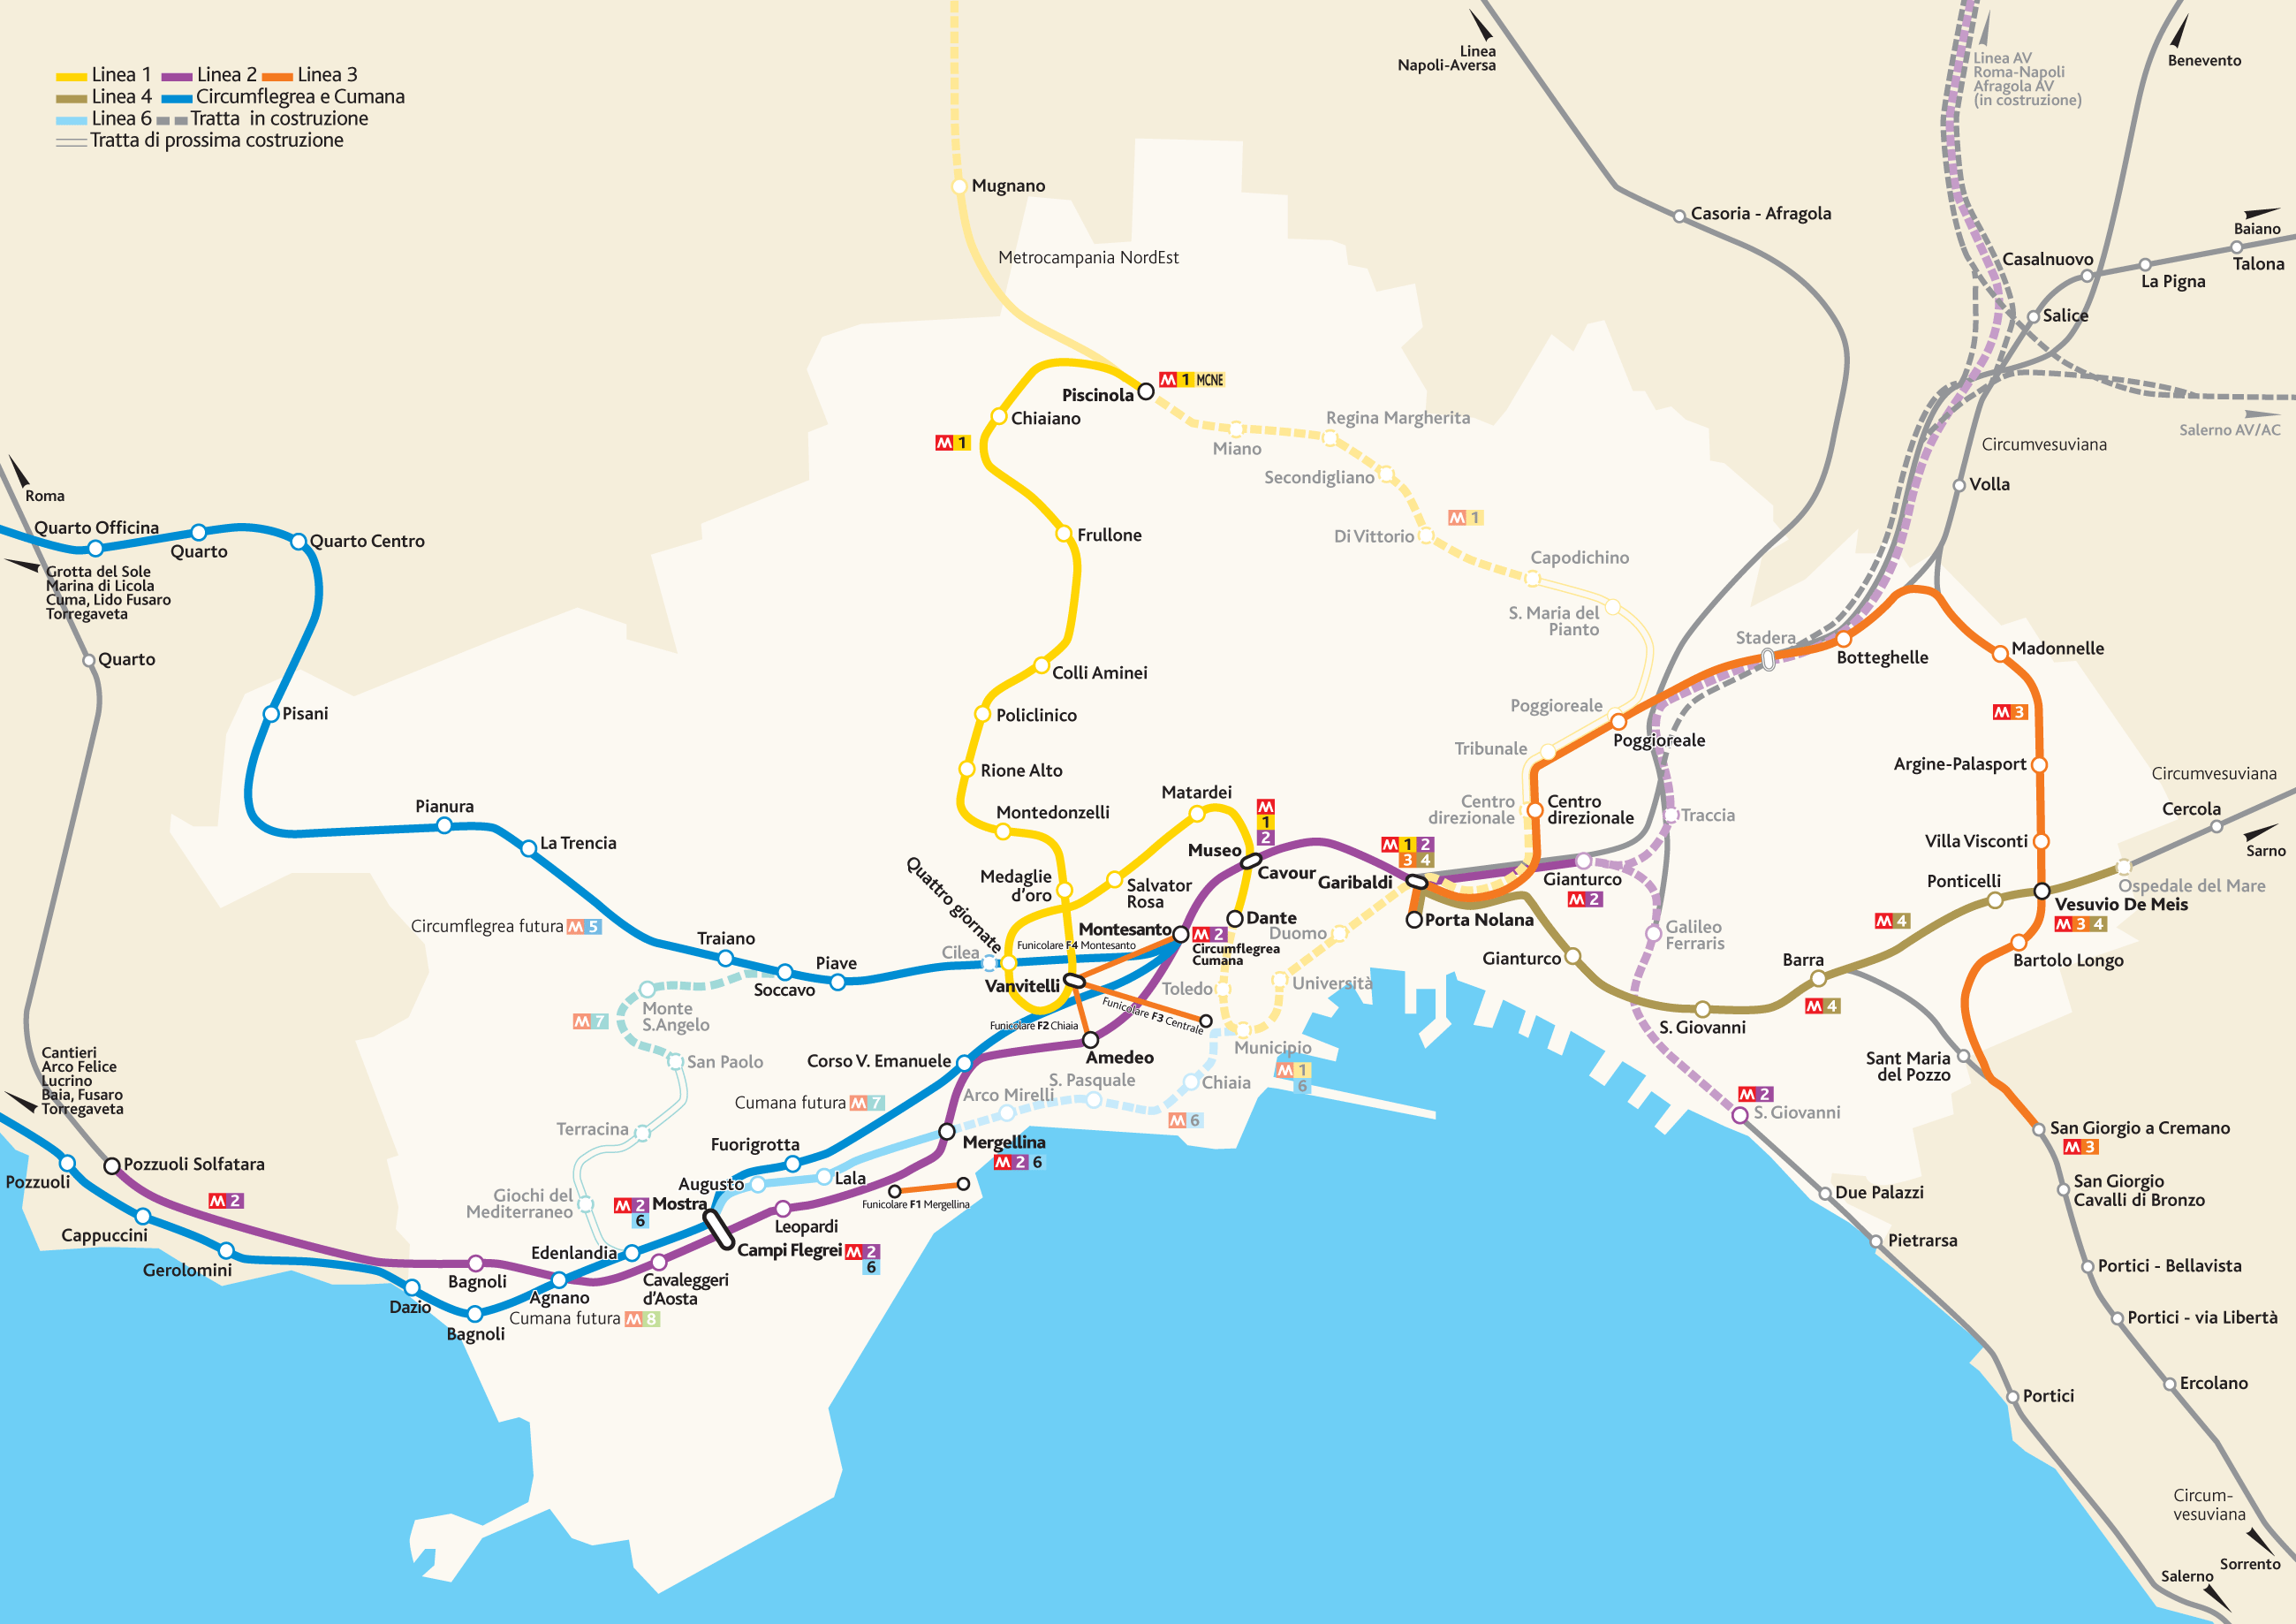 Naples Metro System Map (napoli) large map